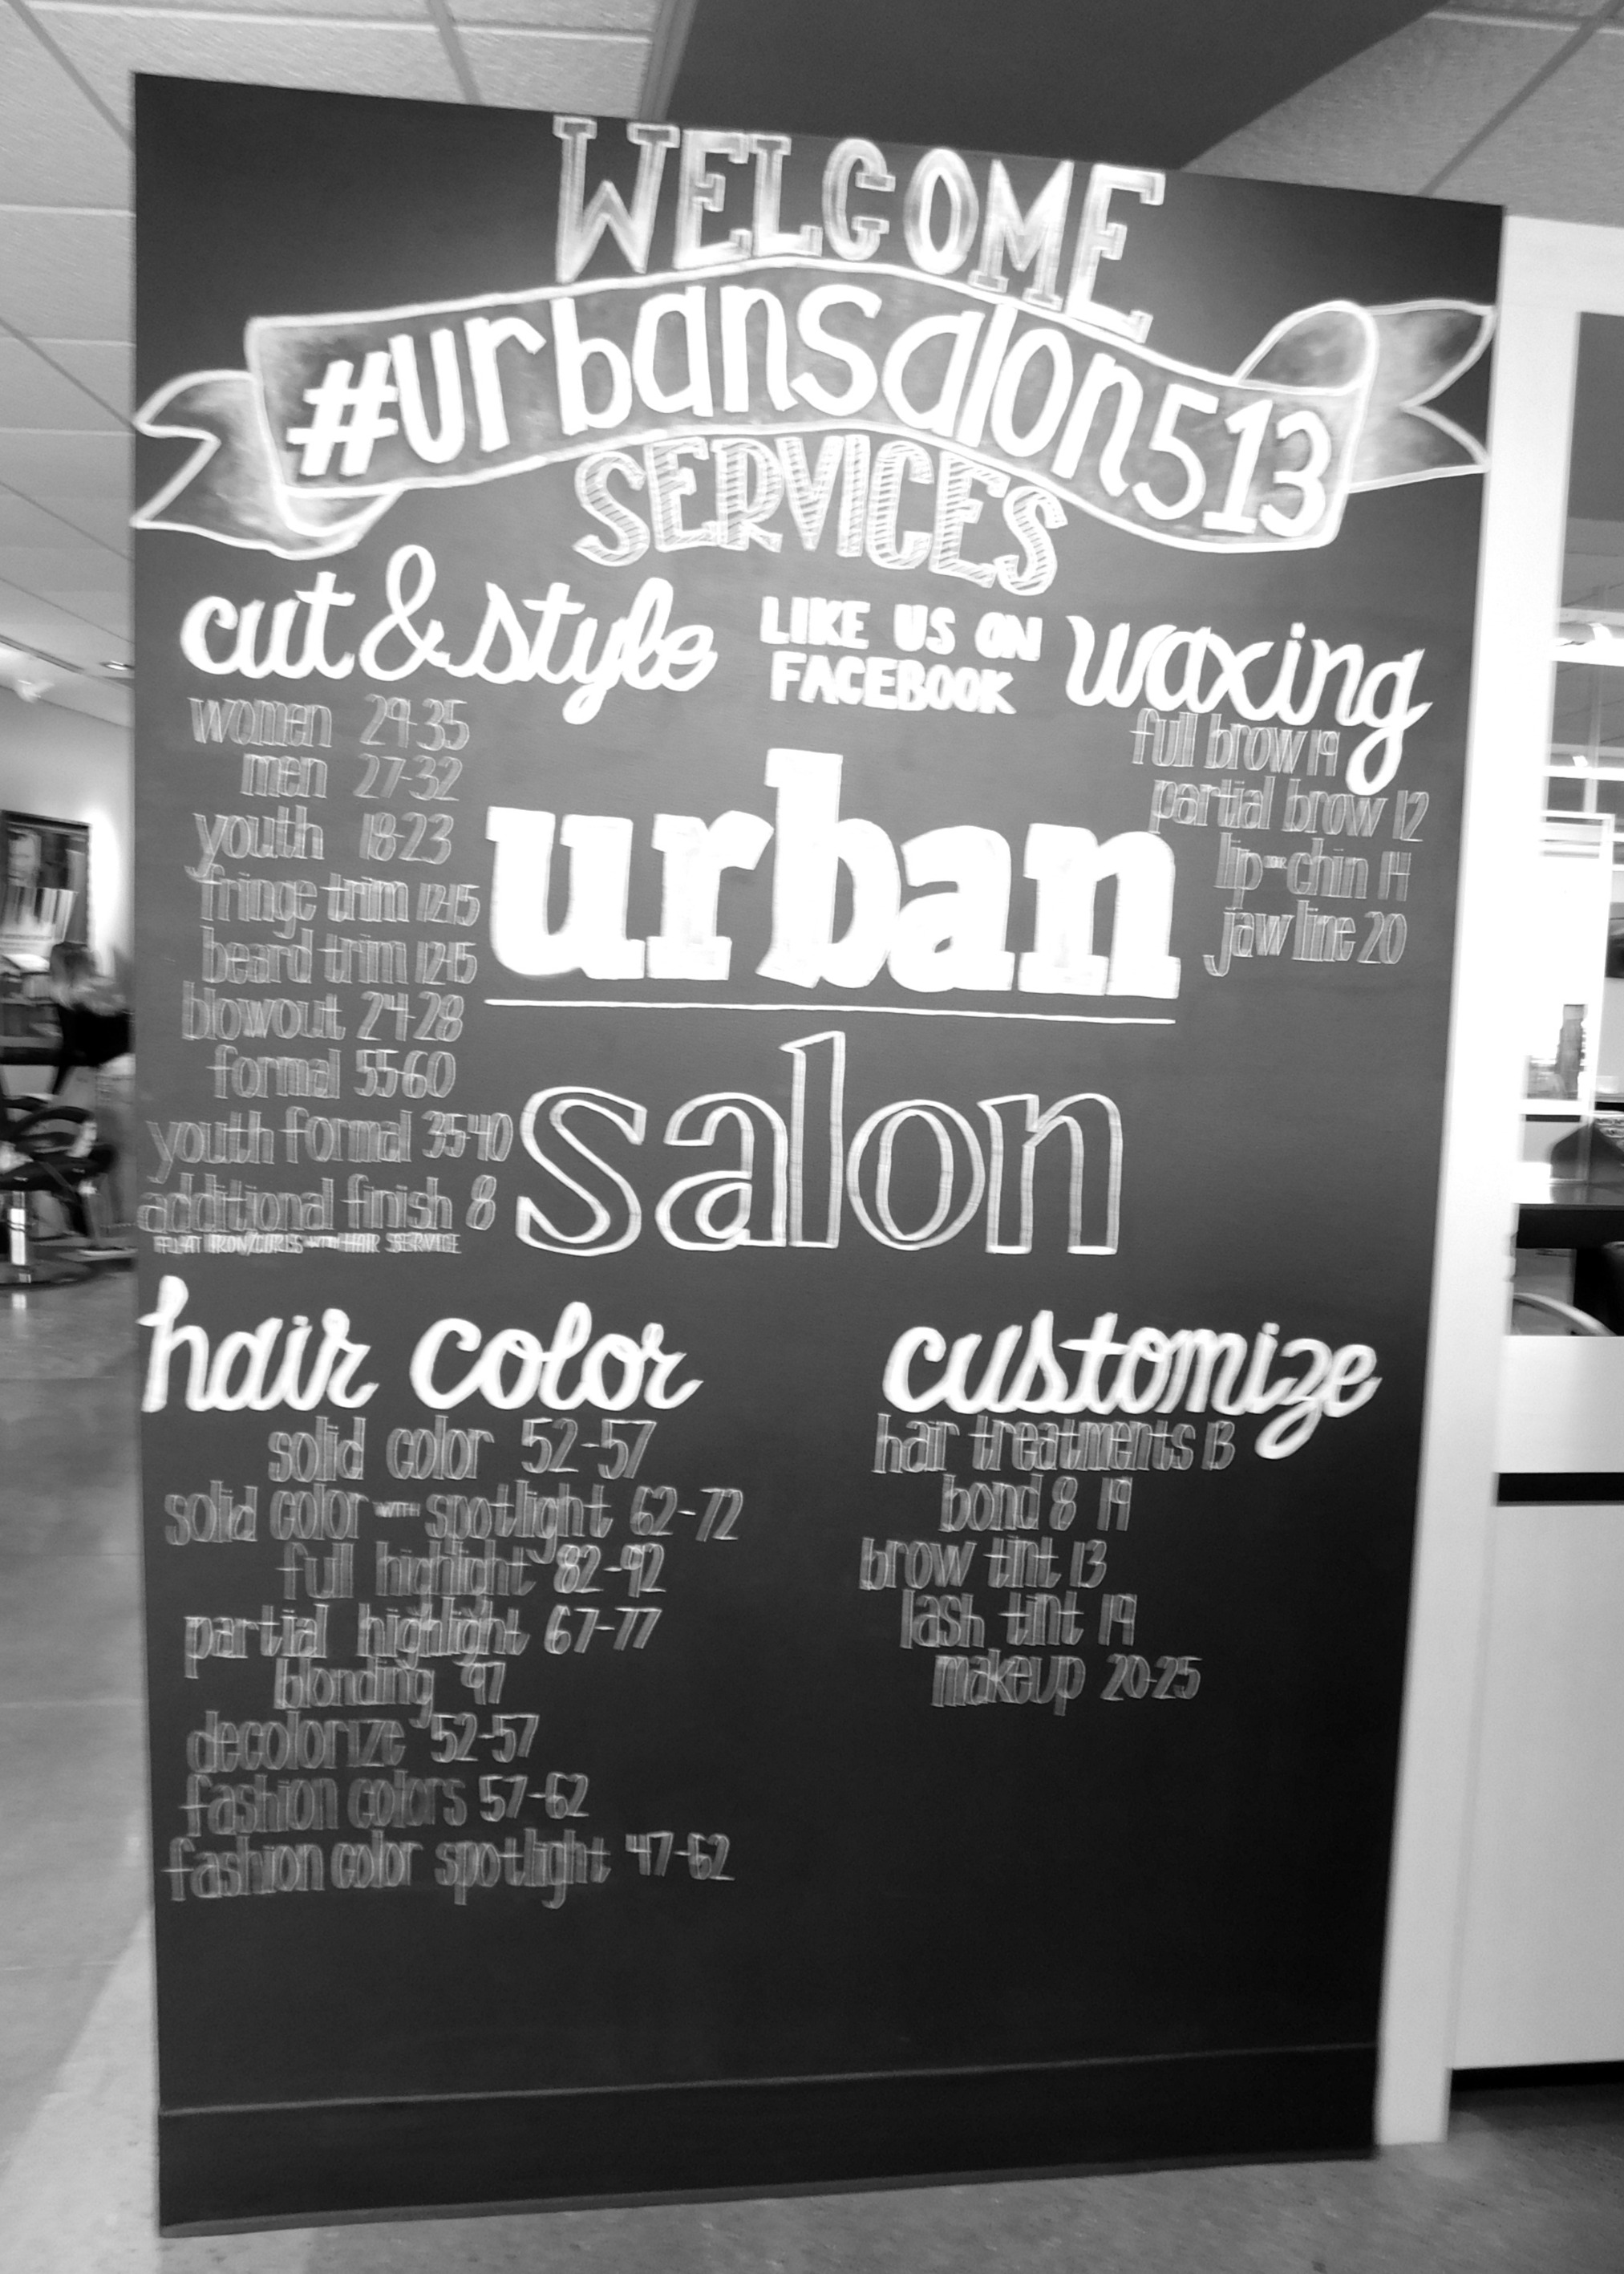 Urban Salon Services